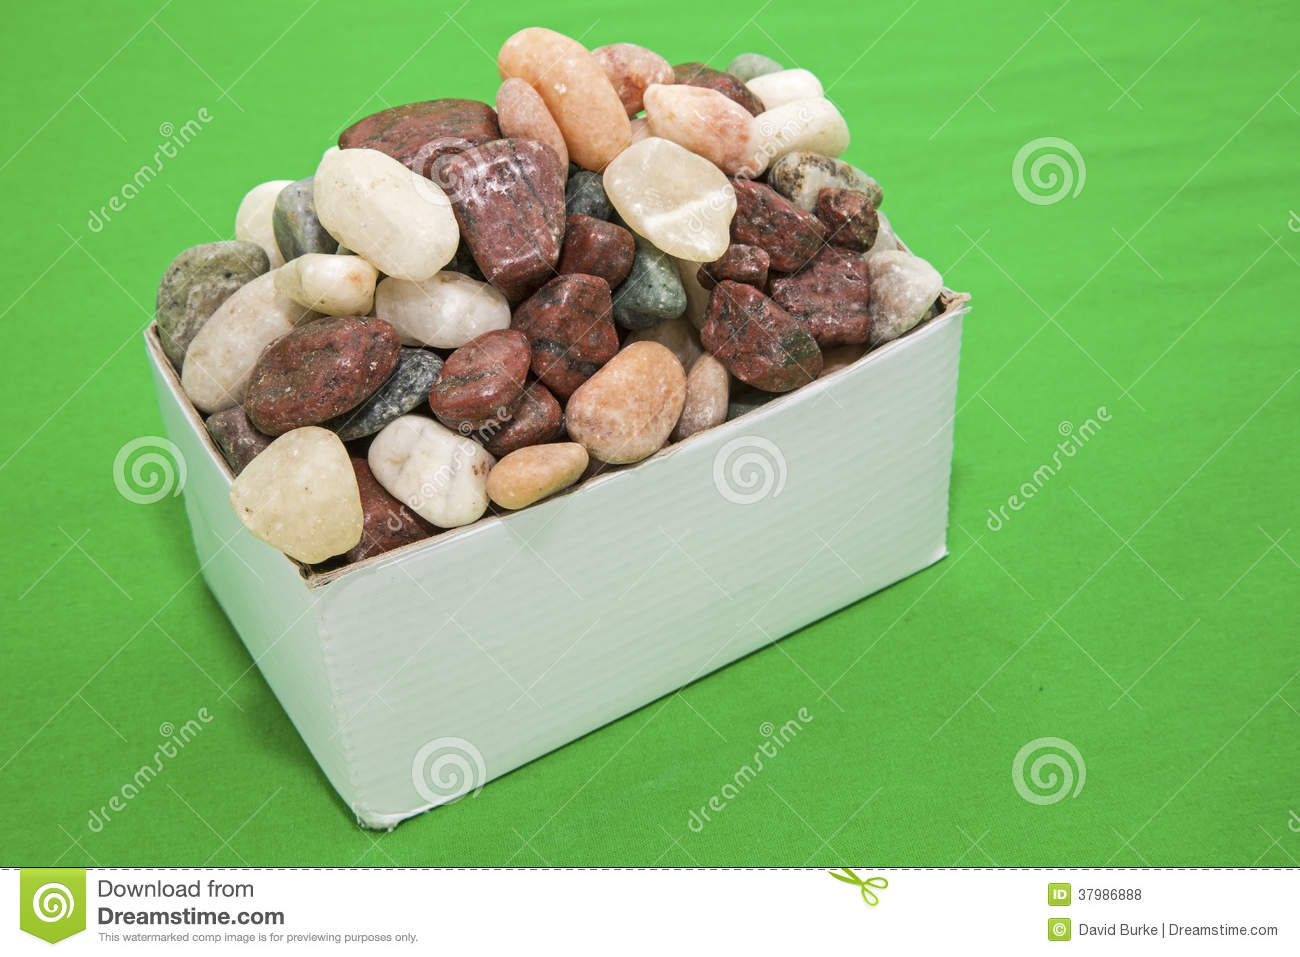 Box Of Rocks Green Background Royalty Free Stock Photos